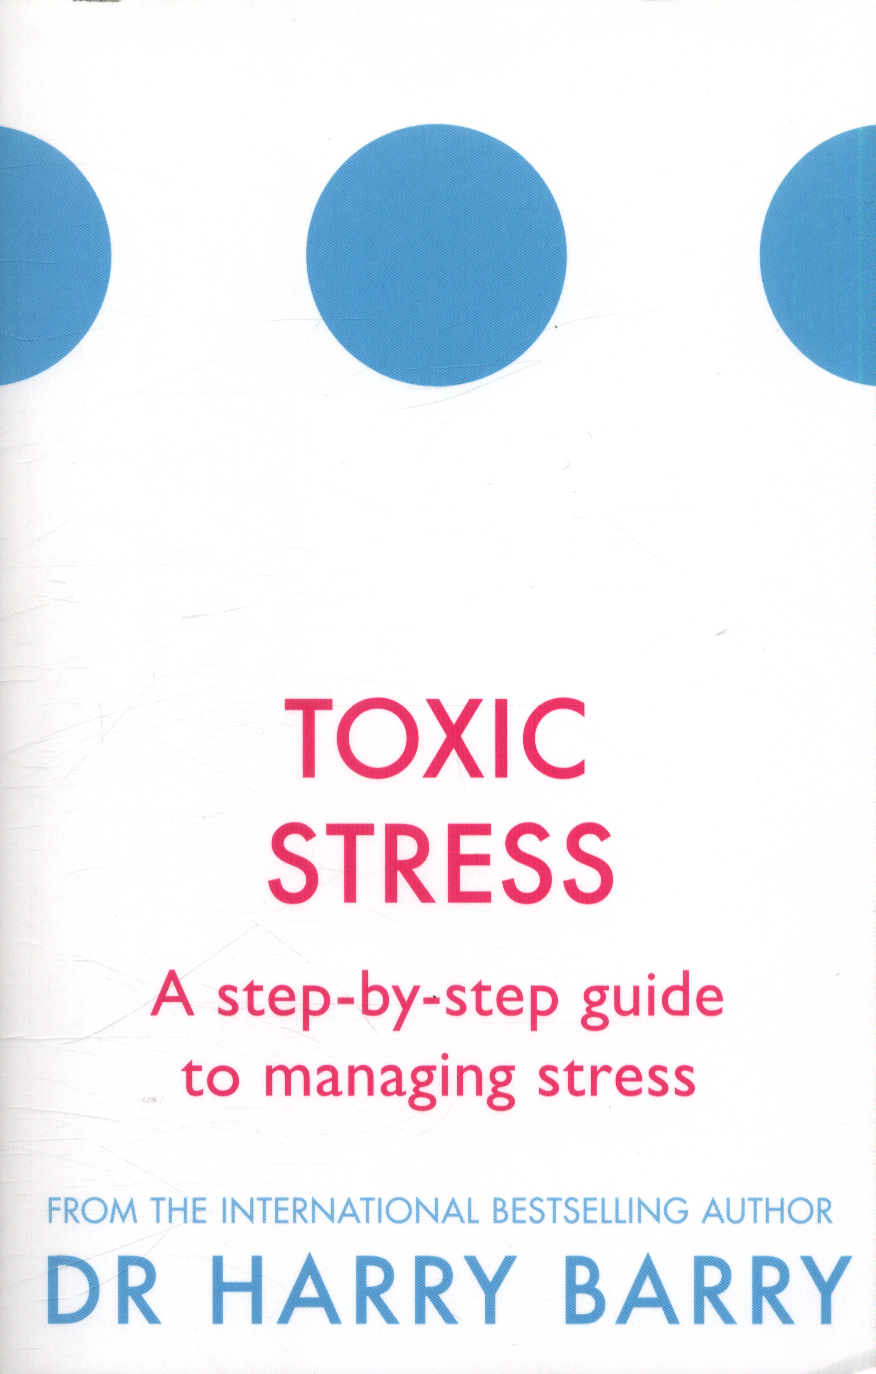 A Guide To Toxic Stress And Its Effects >> Toxic Stress A Step By Step Guide To Managing Stress By Barry